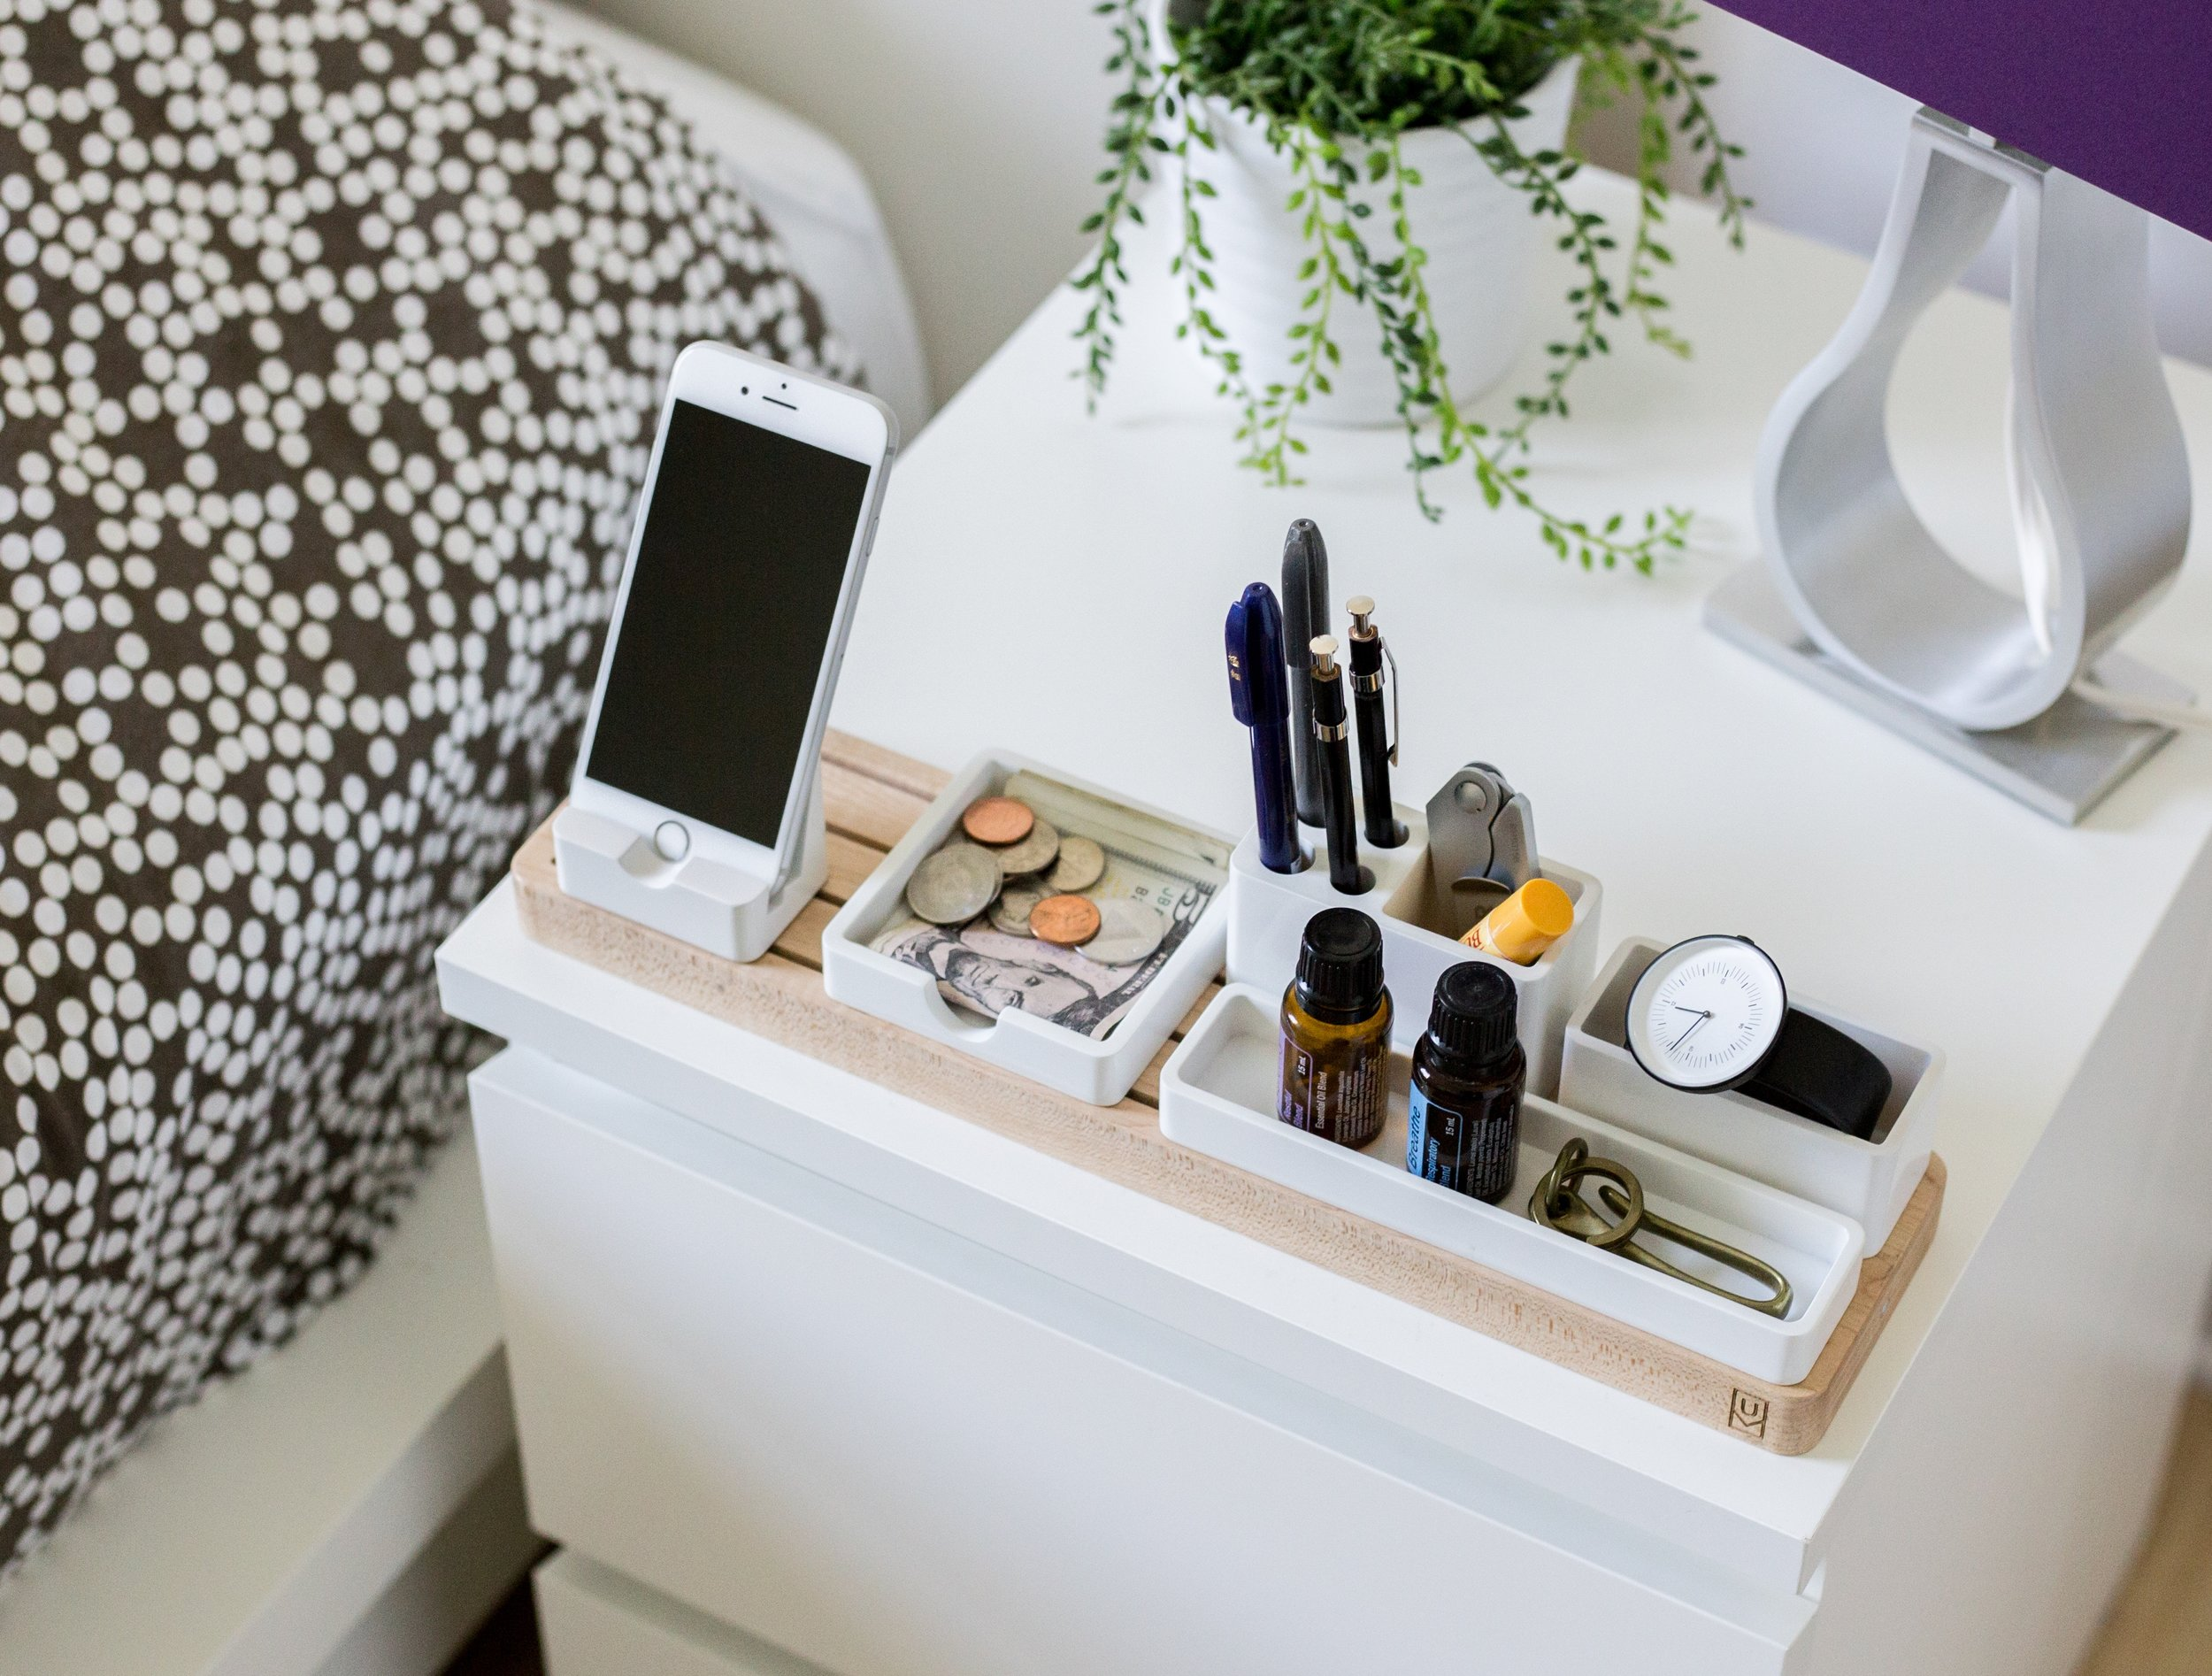 One place that often collects clutter is your nightstand. Take time and clean it up! Photo by Jeff Sheldon